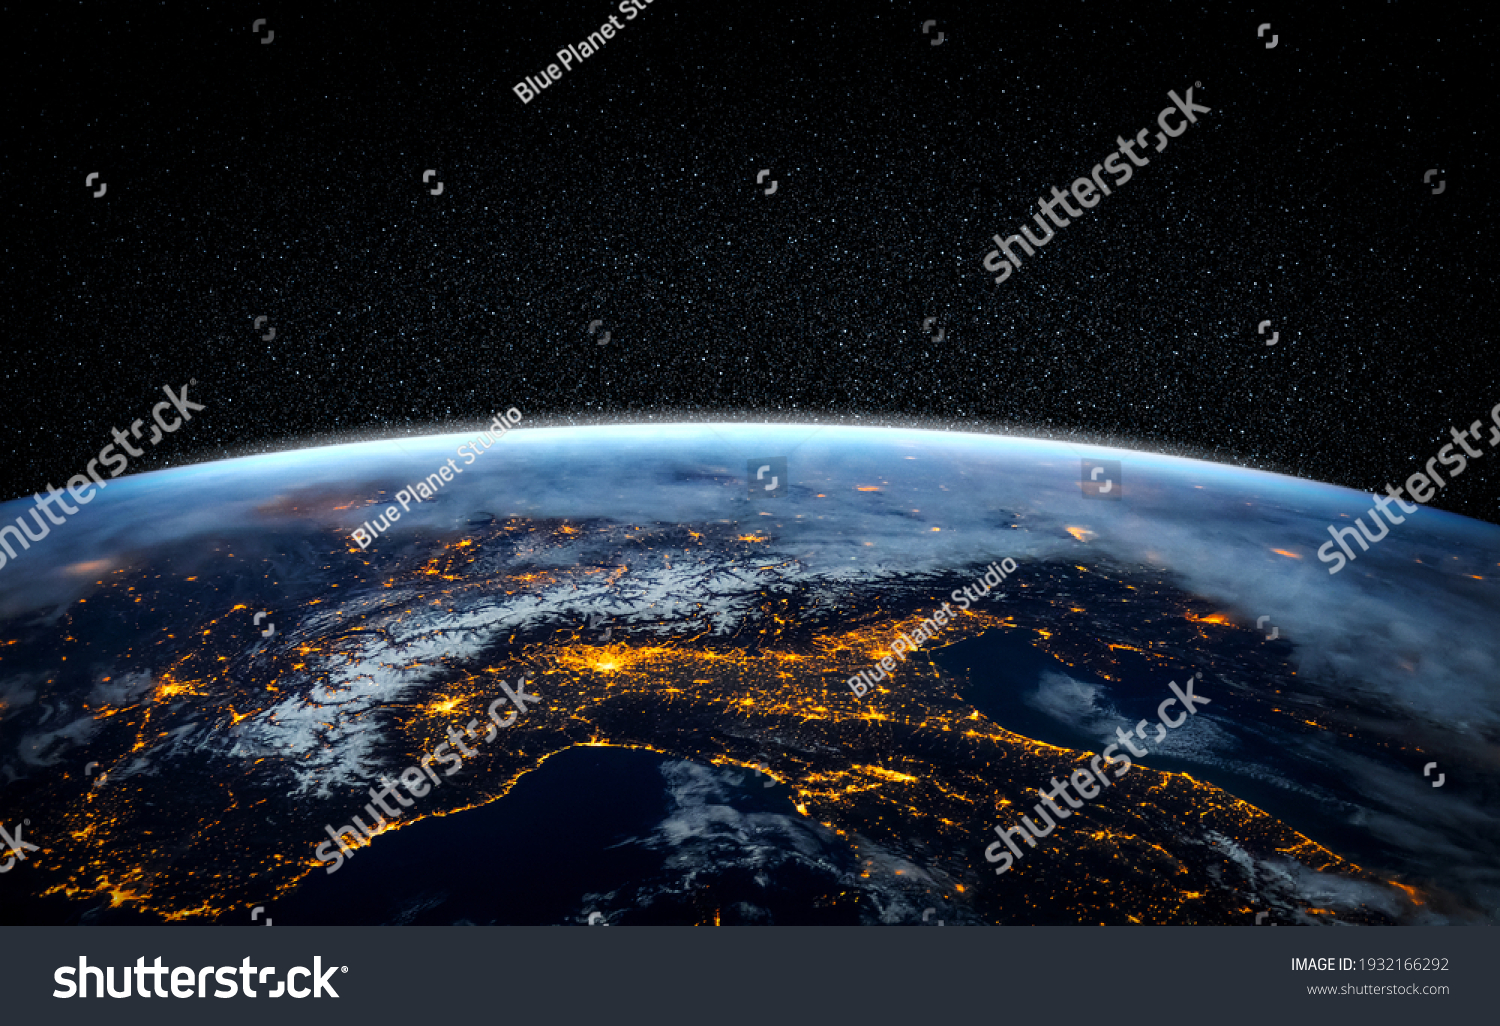 Planet earth globe view from space showing realistic earth surface and world map as in outer space point of view . Elements of this image furnished by NASA planet earth from space photos. #1932166292